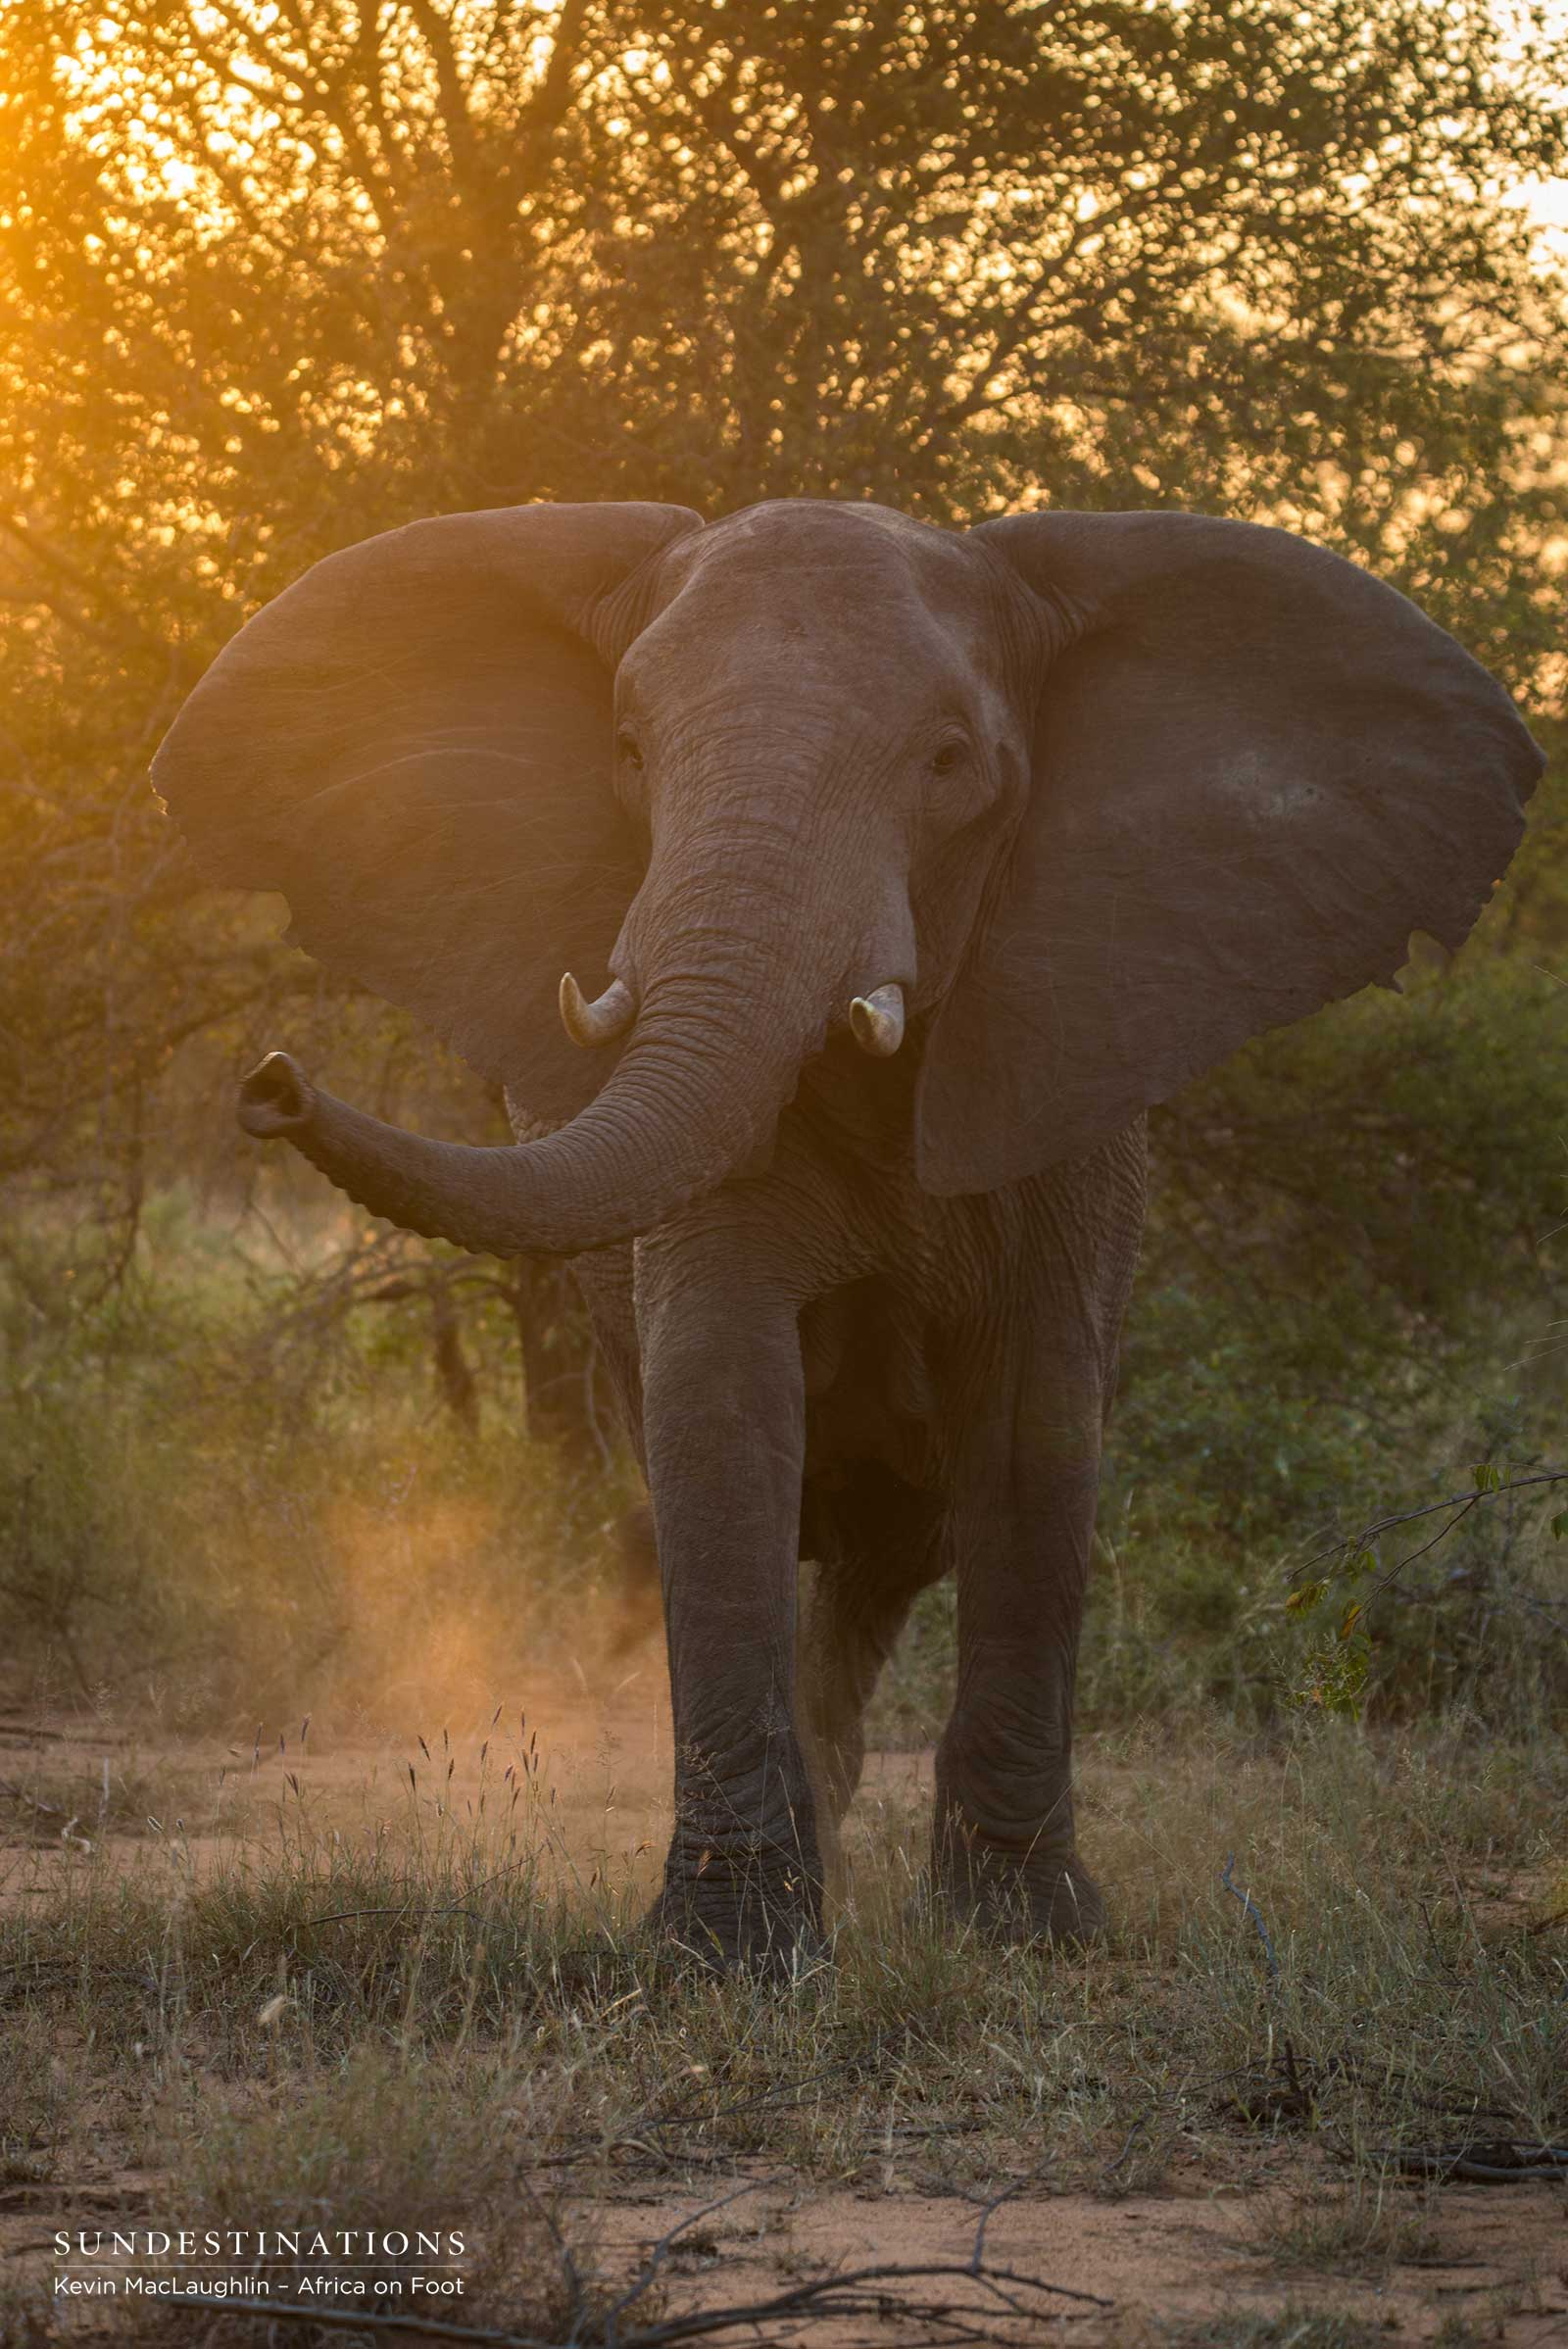 Elephant at Africa on Foot